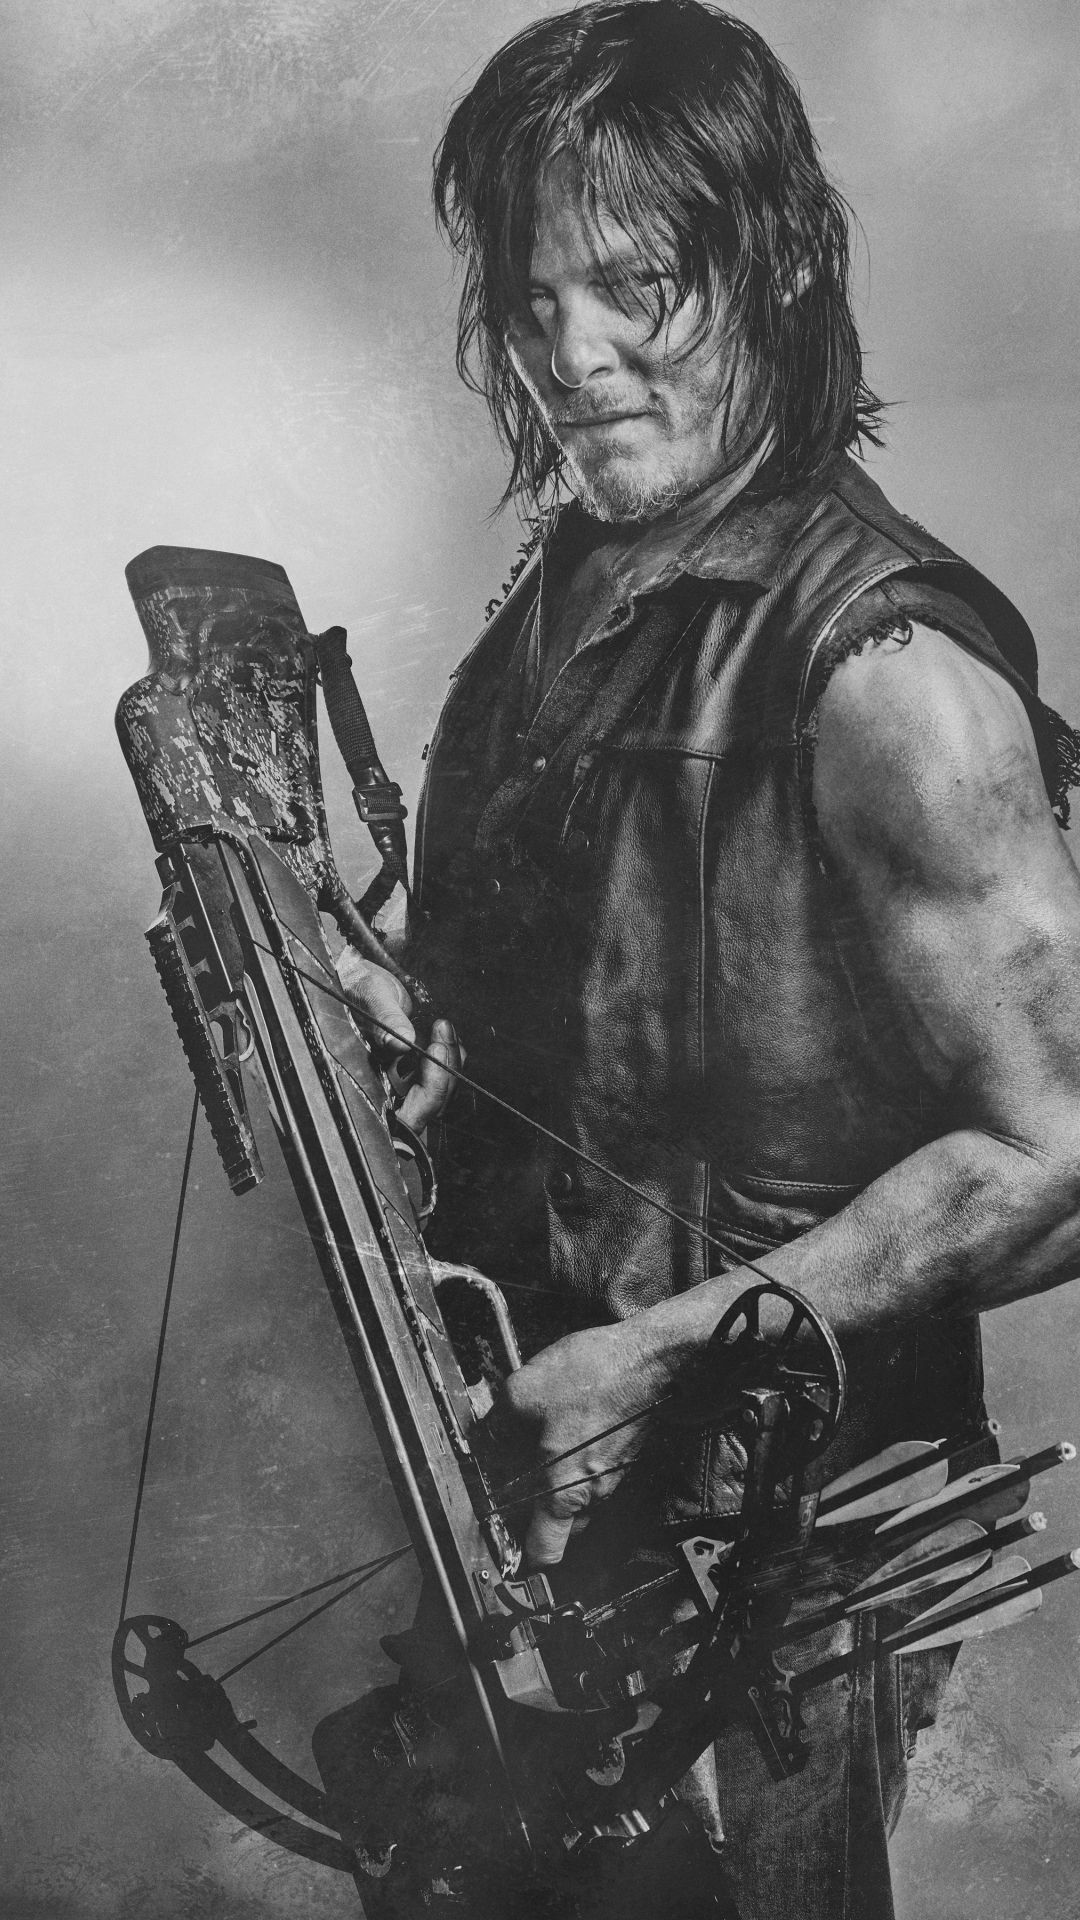 Daryl The Walking Dead Wallpaper Android Download Desenhos Minecraft Carl The Walking Dead The Walking Dead